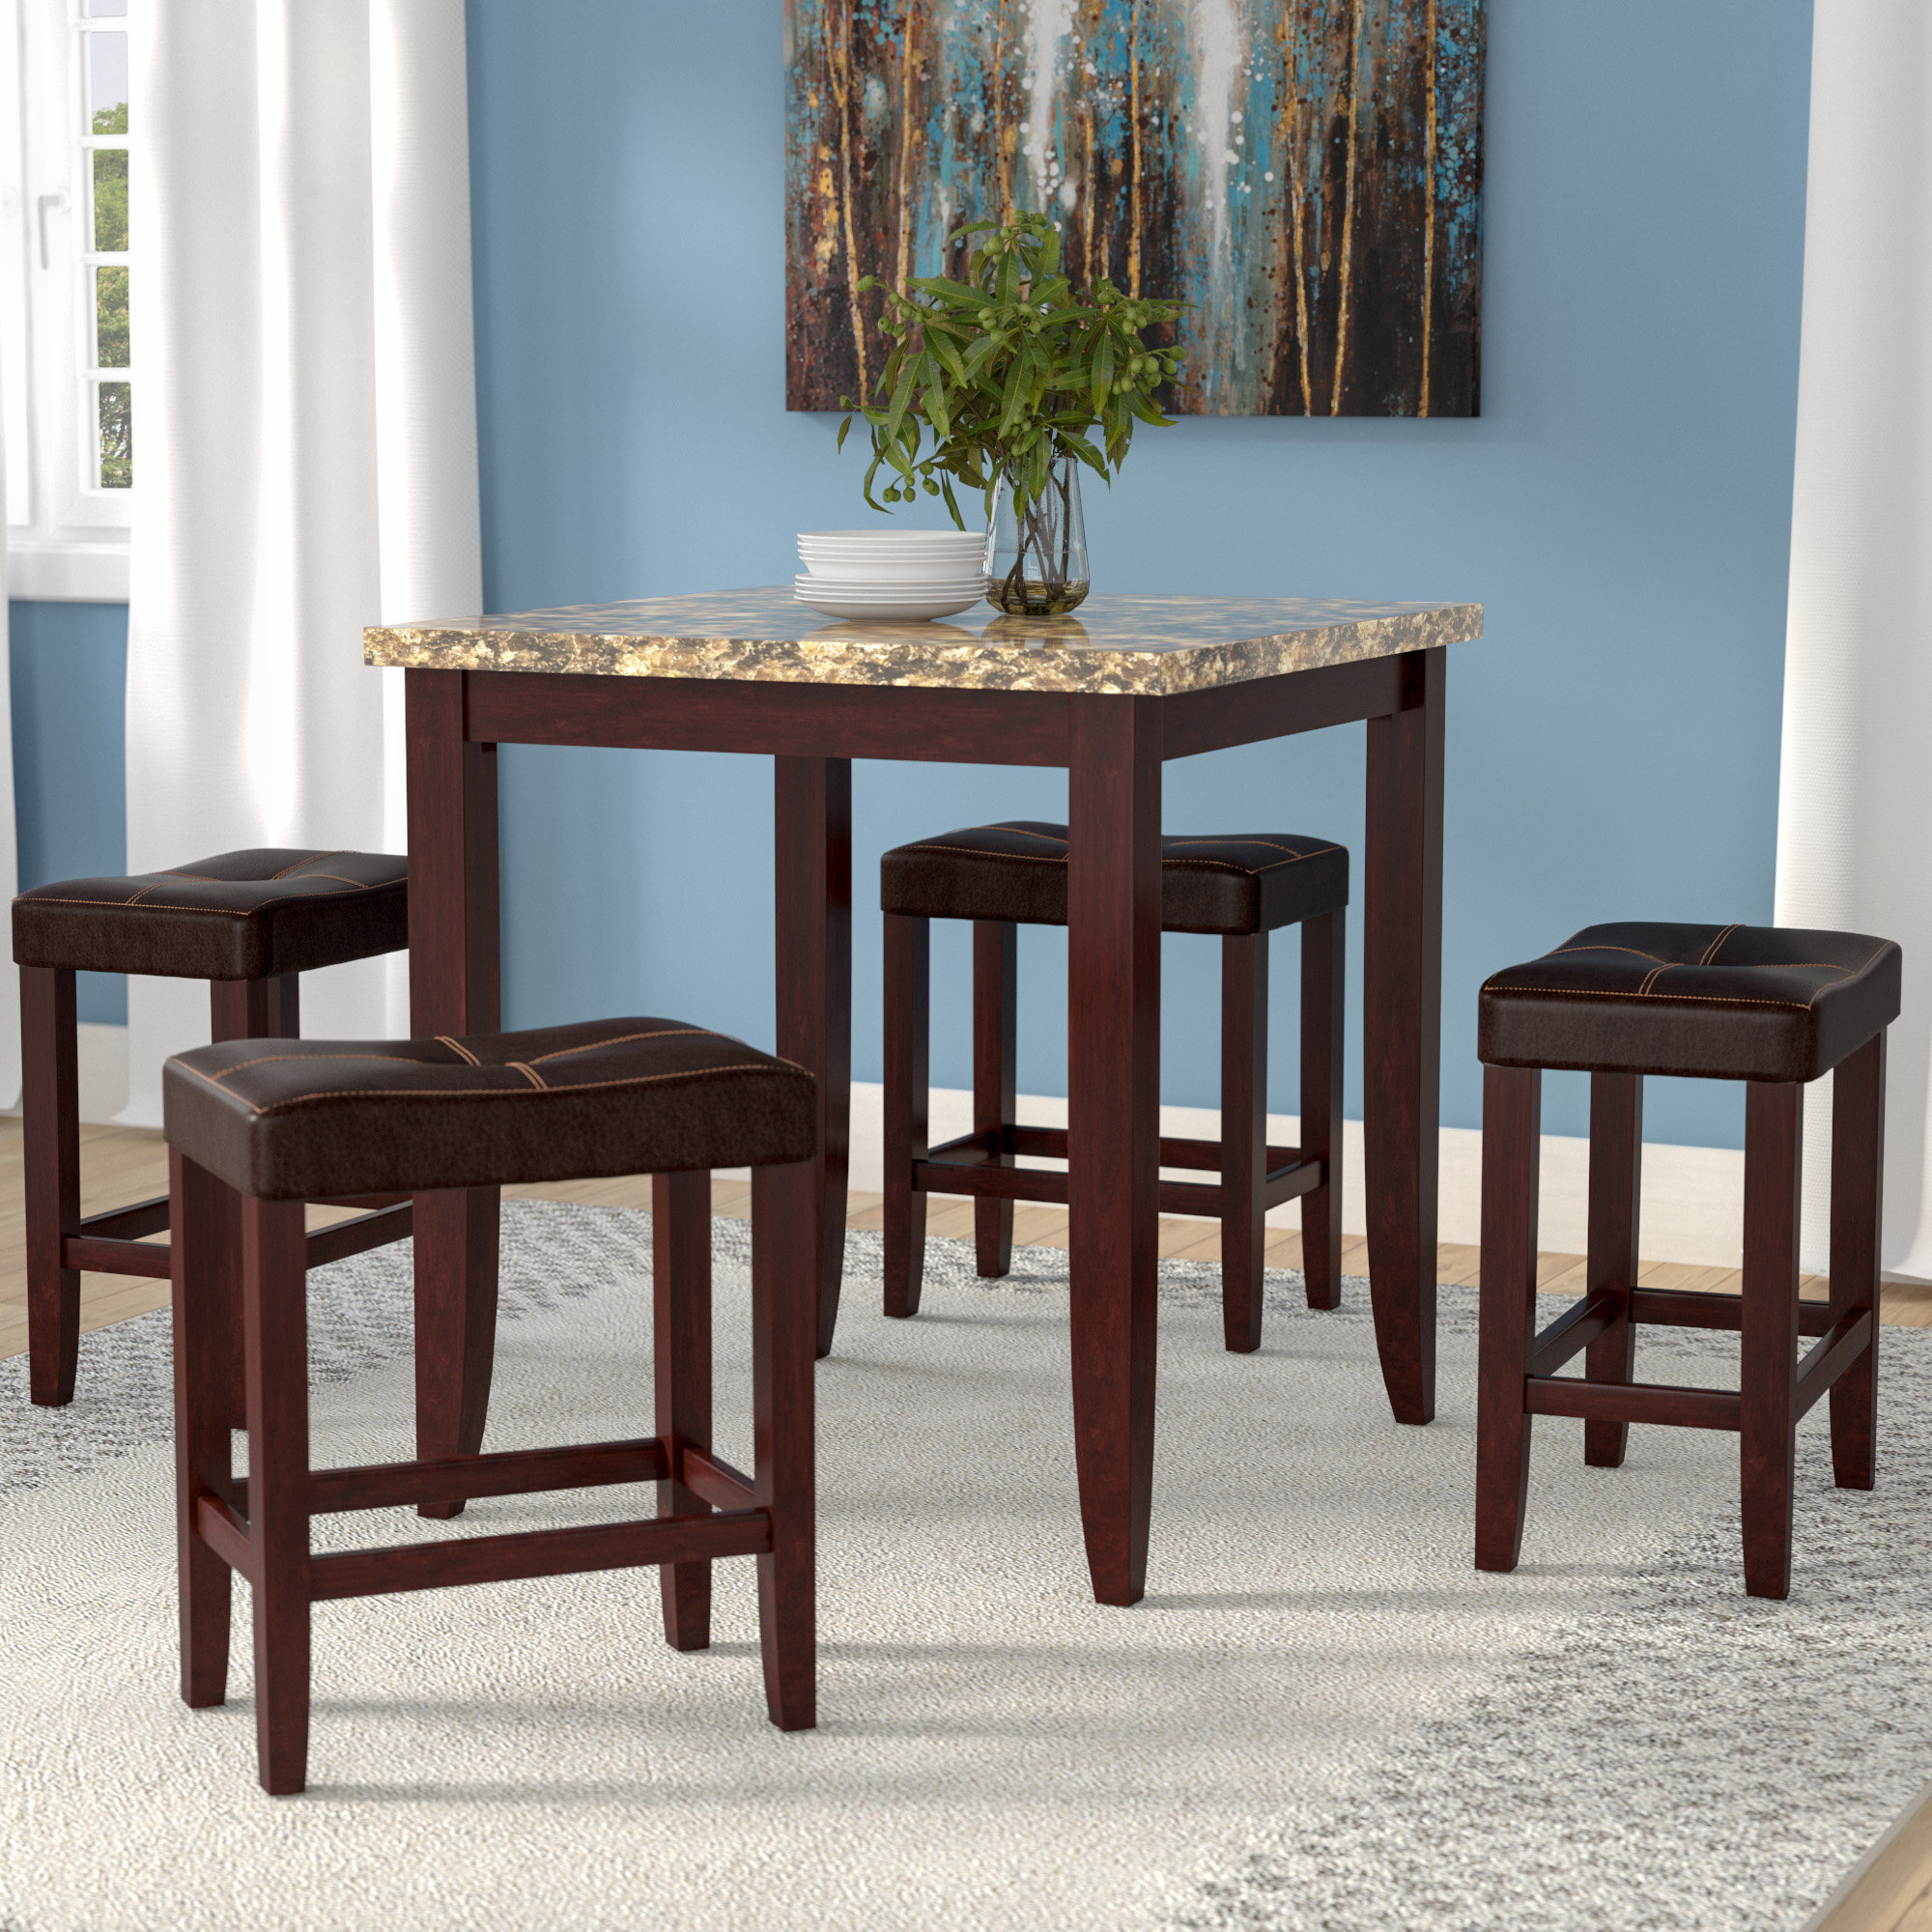 Famous Latitude Run Dejean 5 Piece Counter Height Dining Set & Reviews With Regard To Askern 3 Piece Counter Height Dining Sets (Set Of 3) (View 9 of 25)